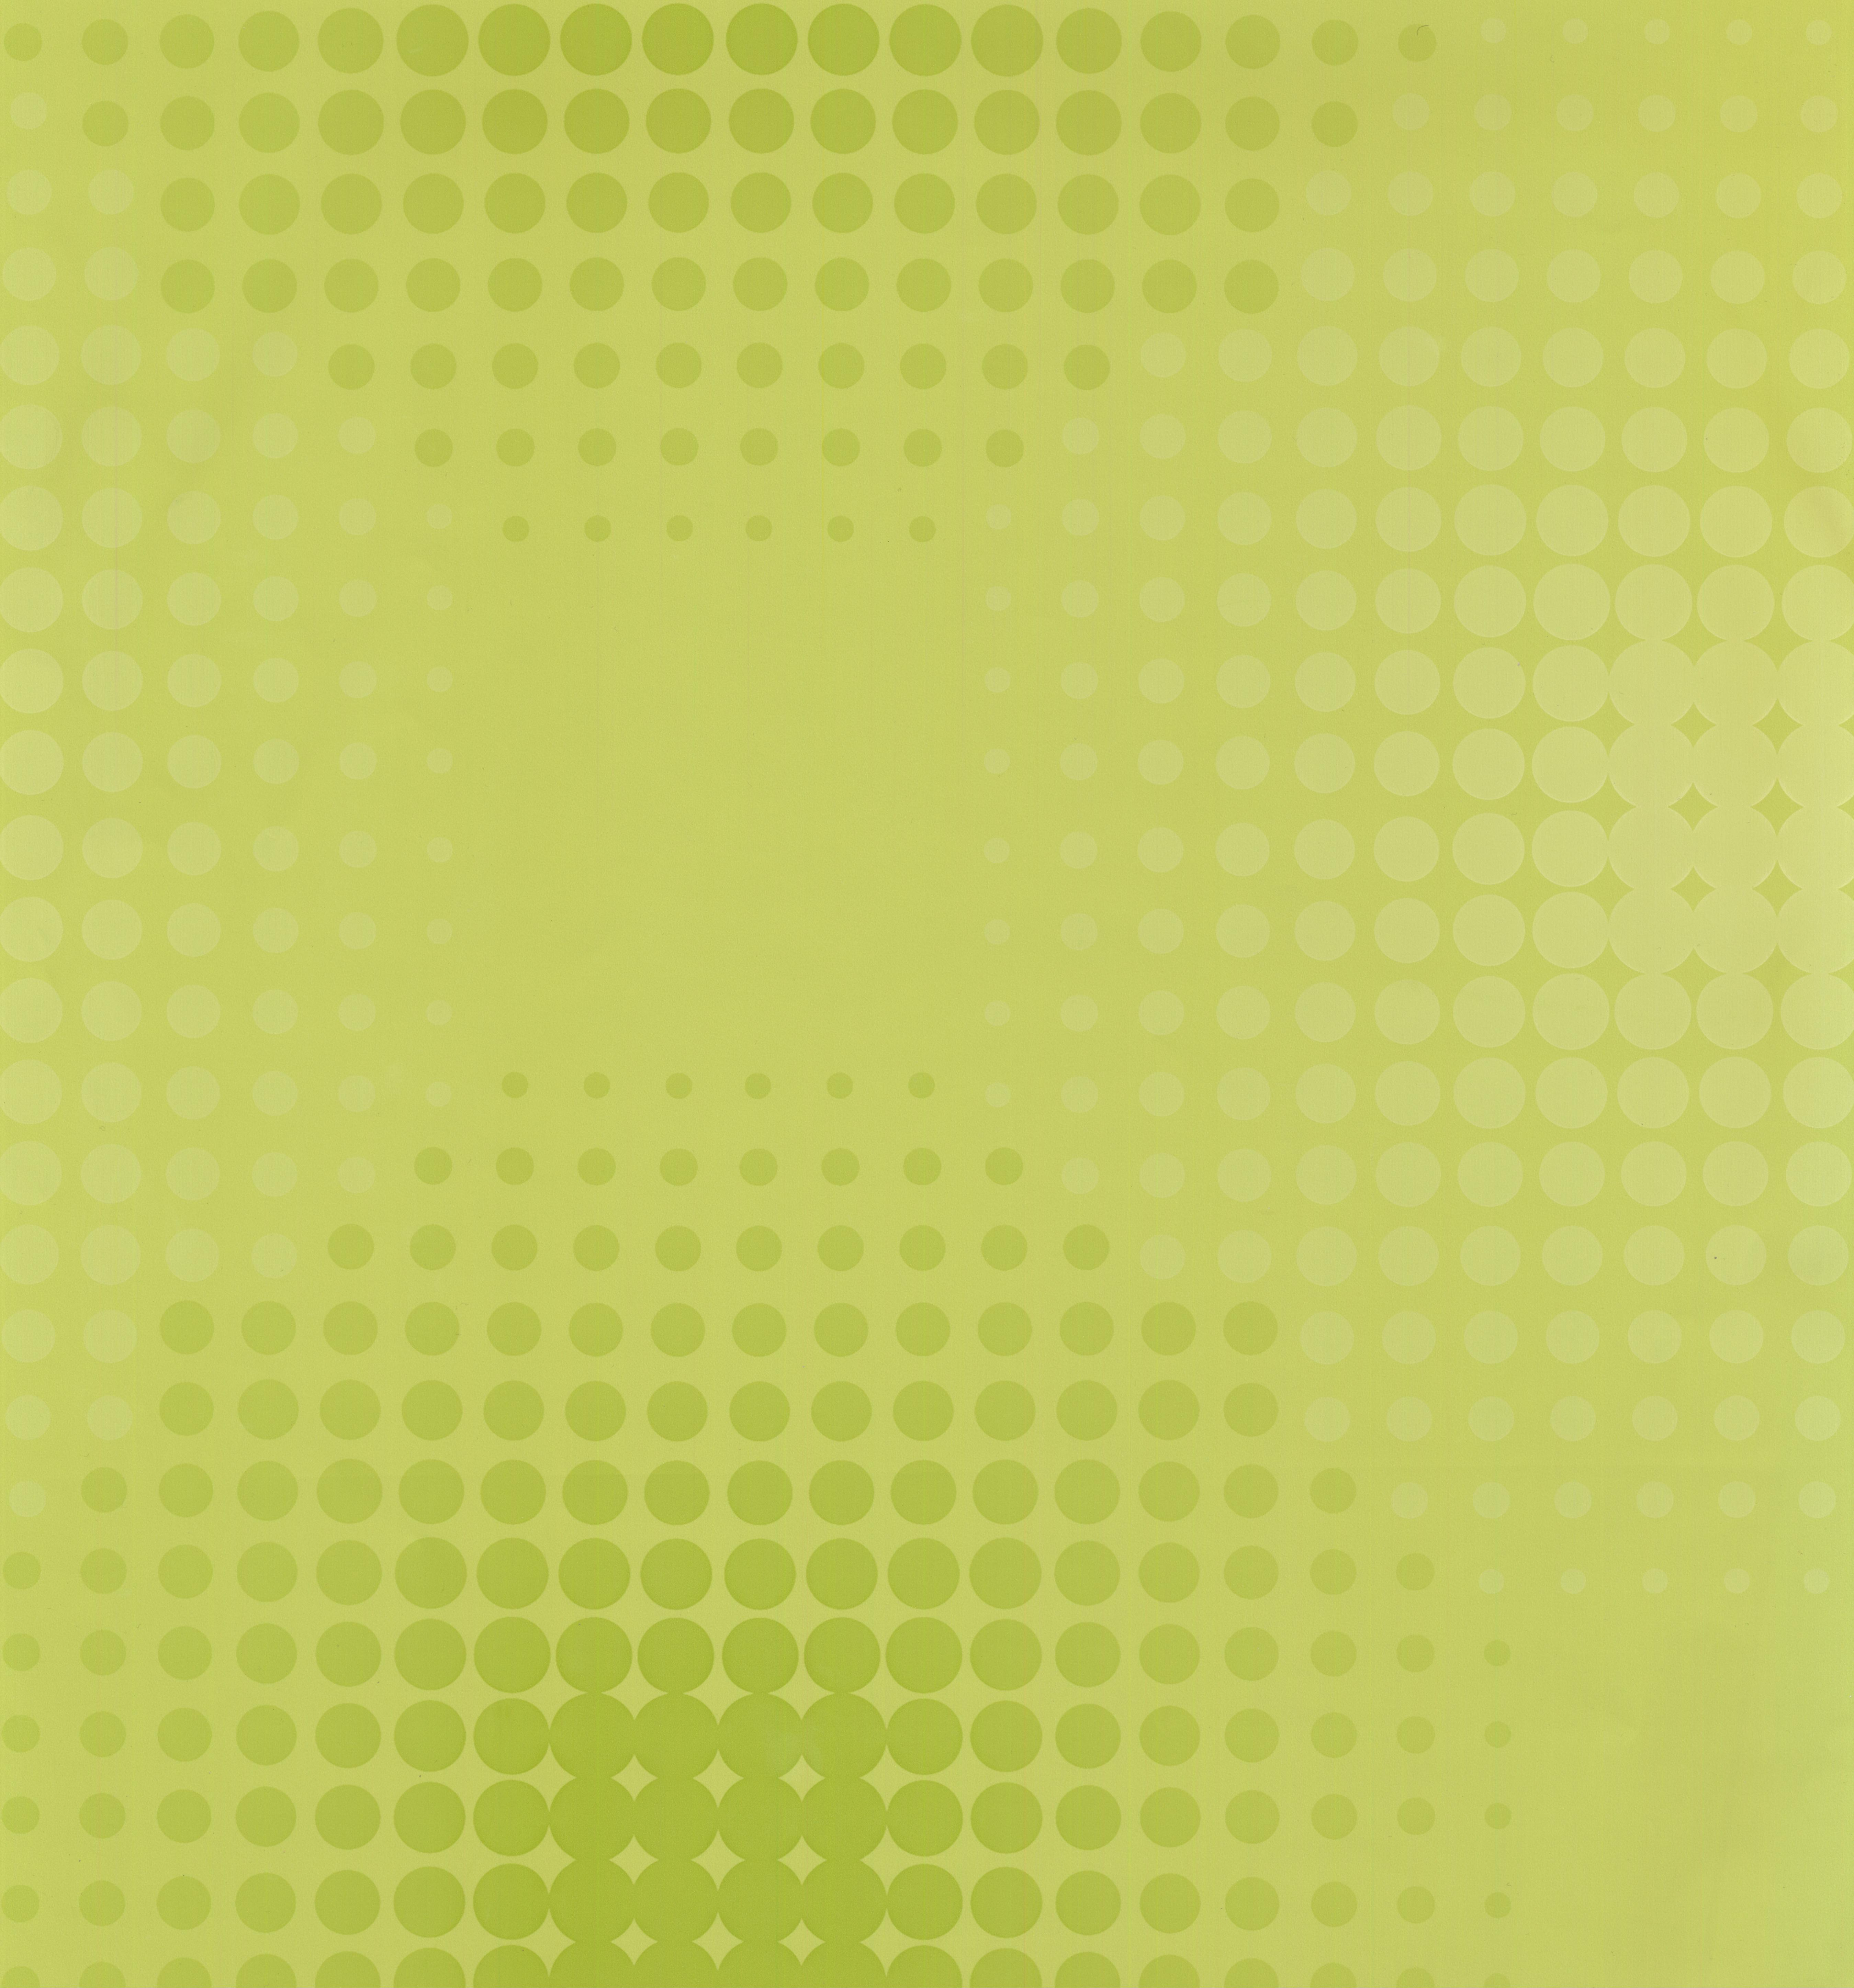 ABSTRACT - Modern Color Green Wallpaper Roll - image 1 of 1